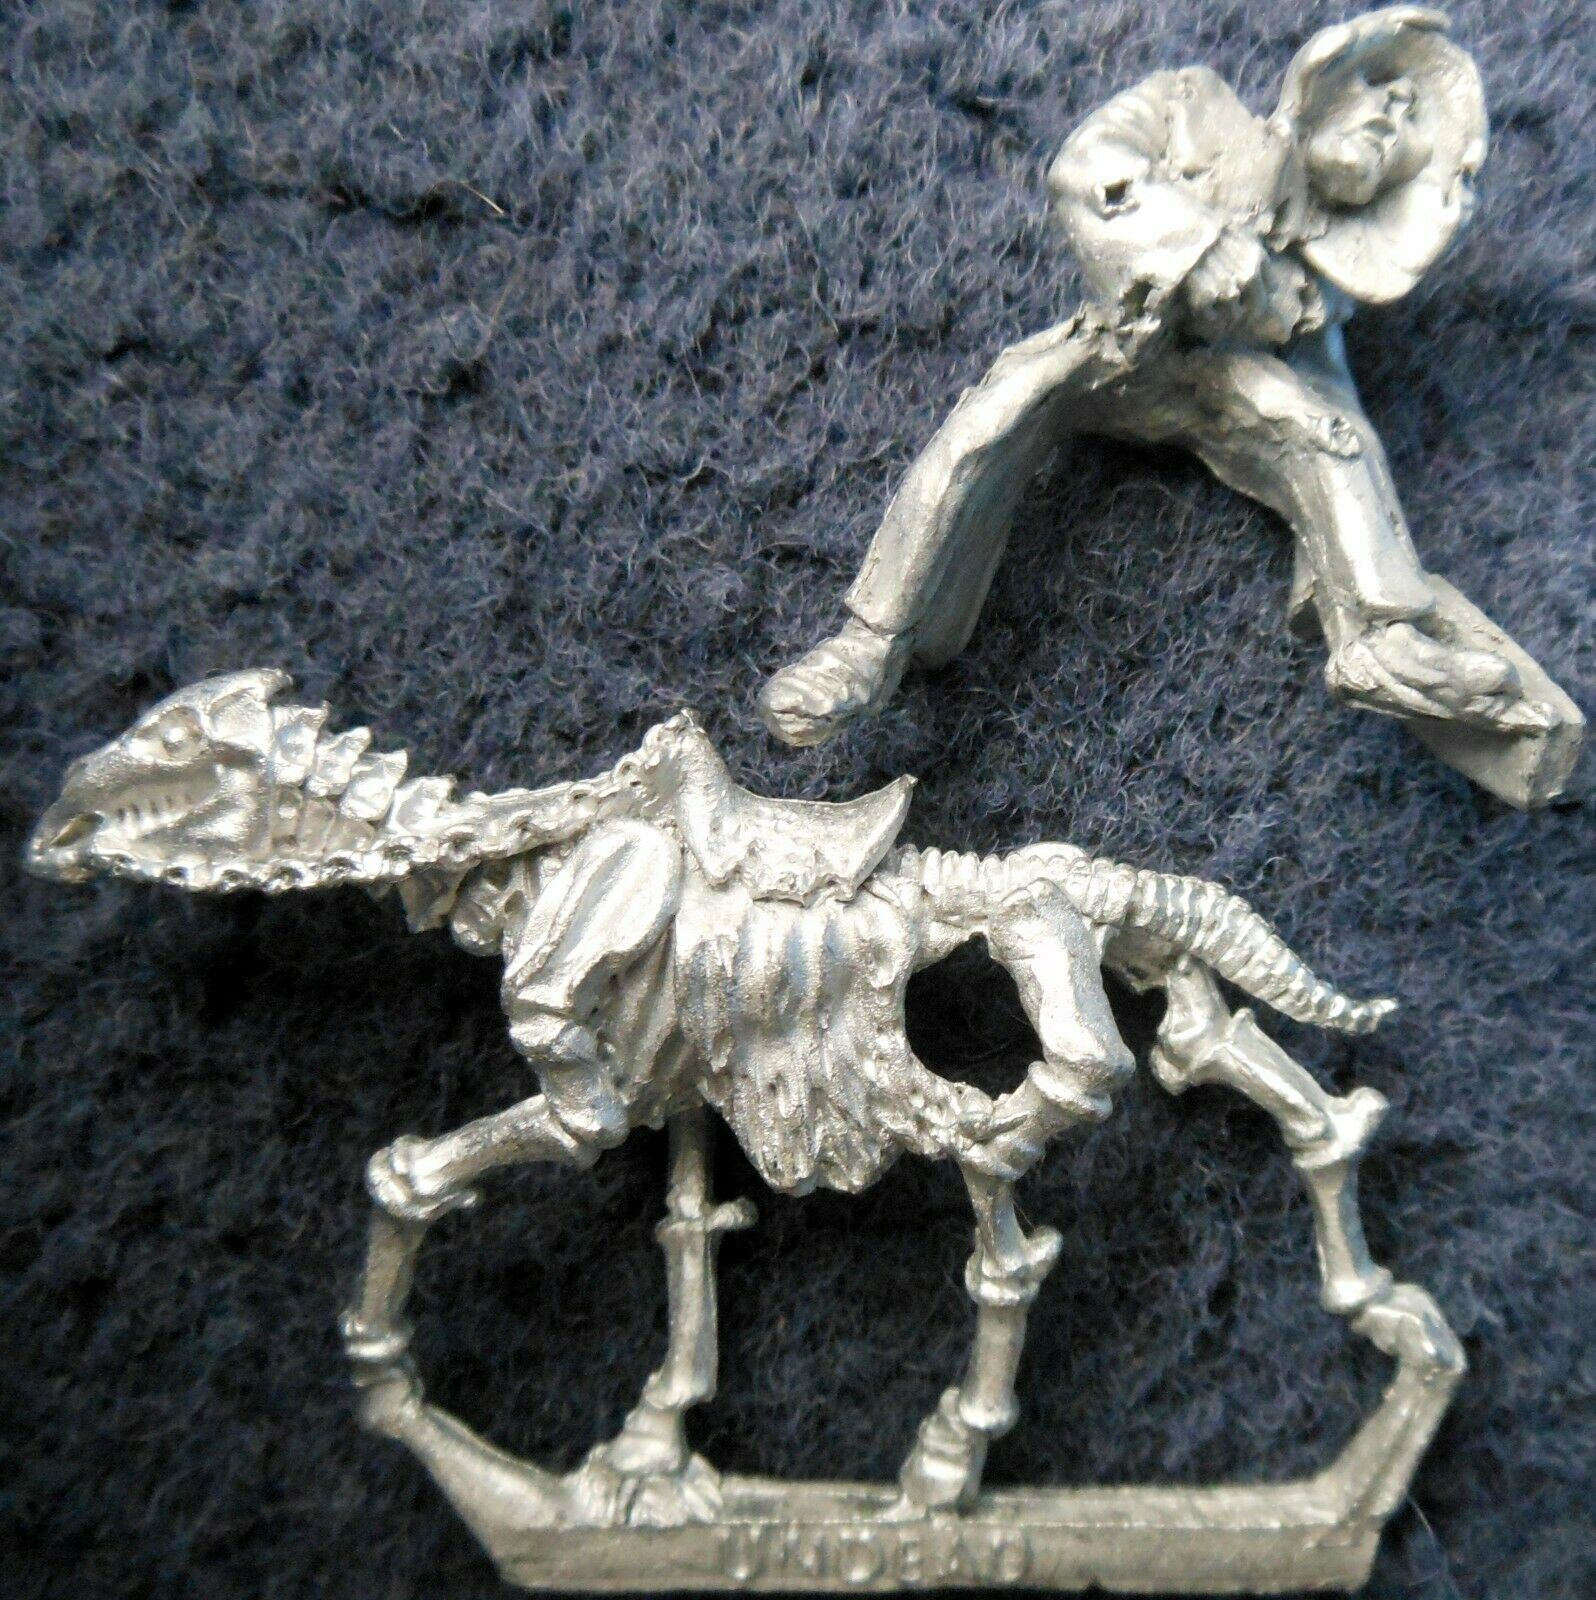 1985 Undead Cavalry C21 9 Elfcleaver A Mounted Skeleton Zombie Citadel Warhammer